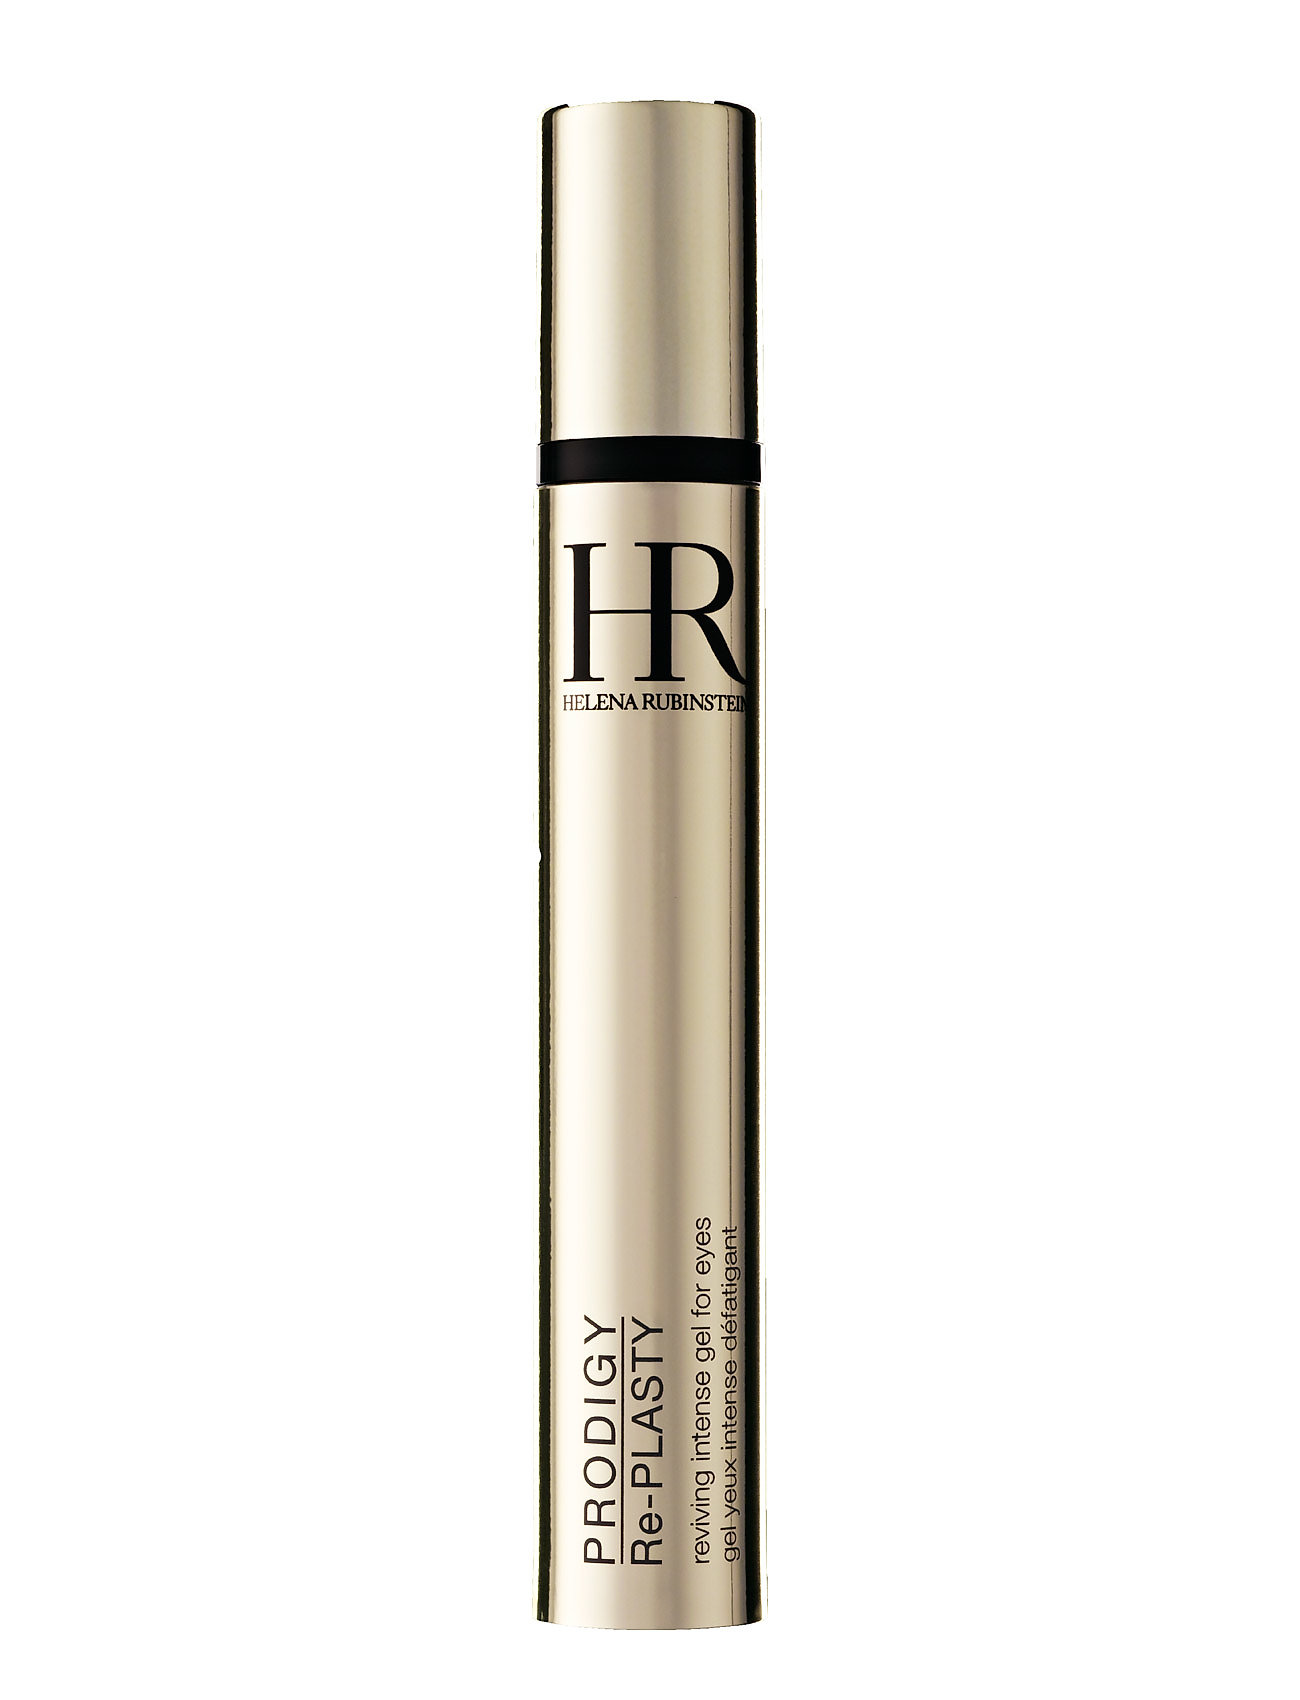 Re-plasty eye cream 15 ml fra helena rubinstein på boozt.com dk